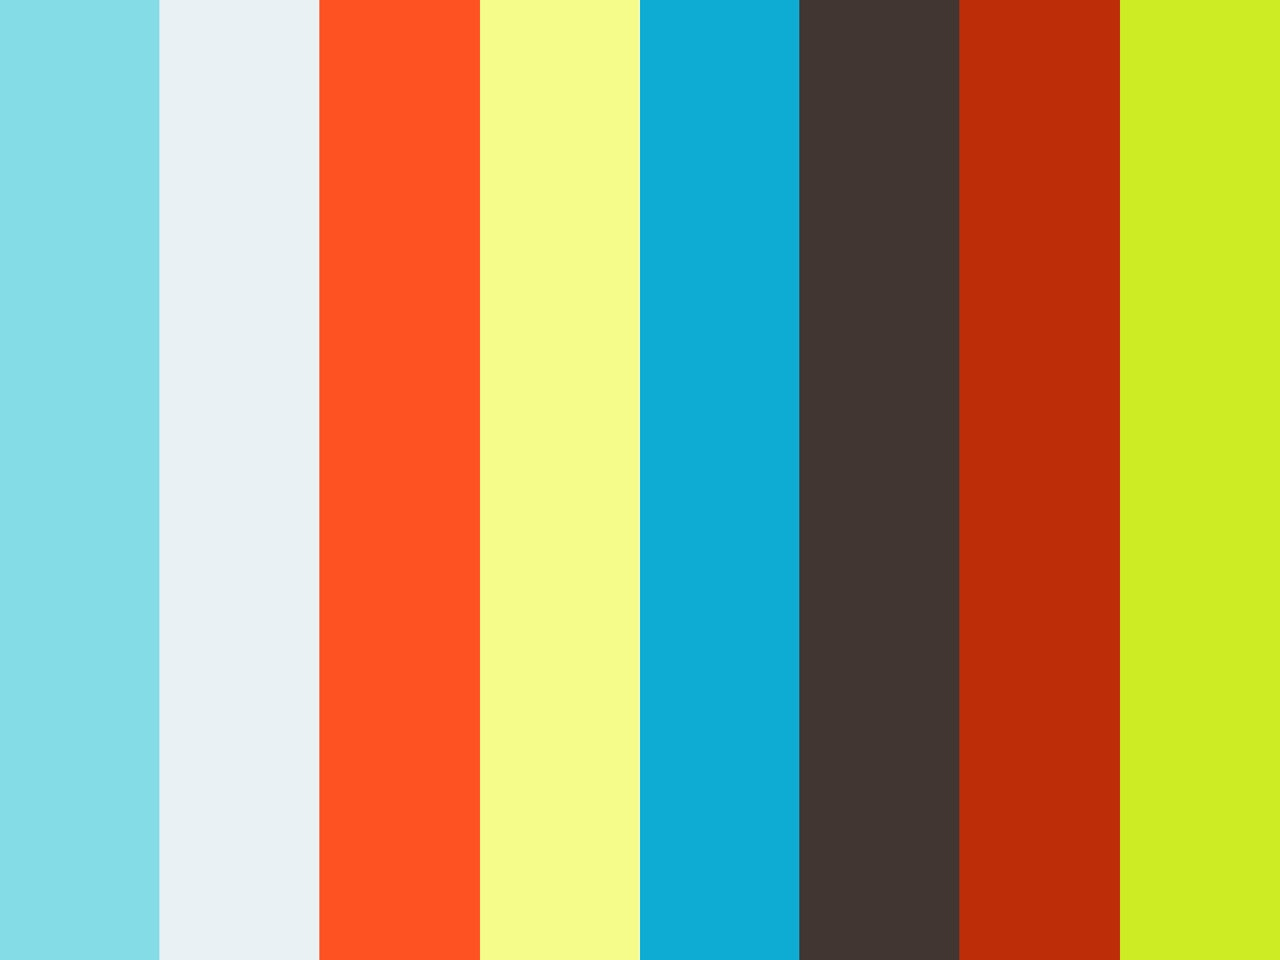 How to convert fractions into decimals on a Casio calculator on Vimeo